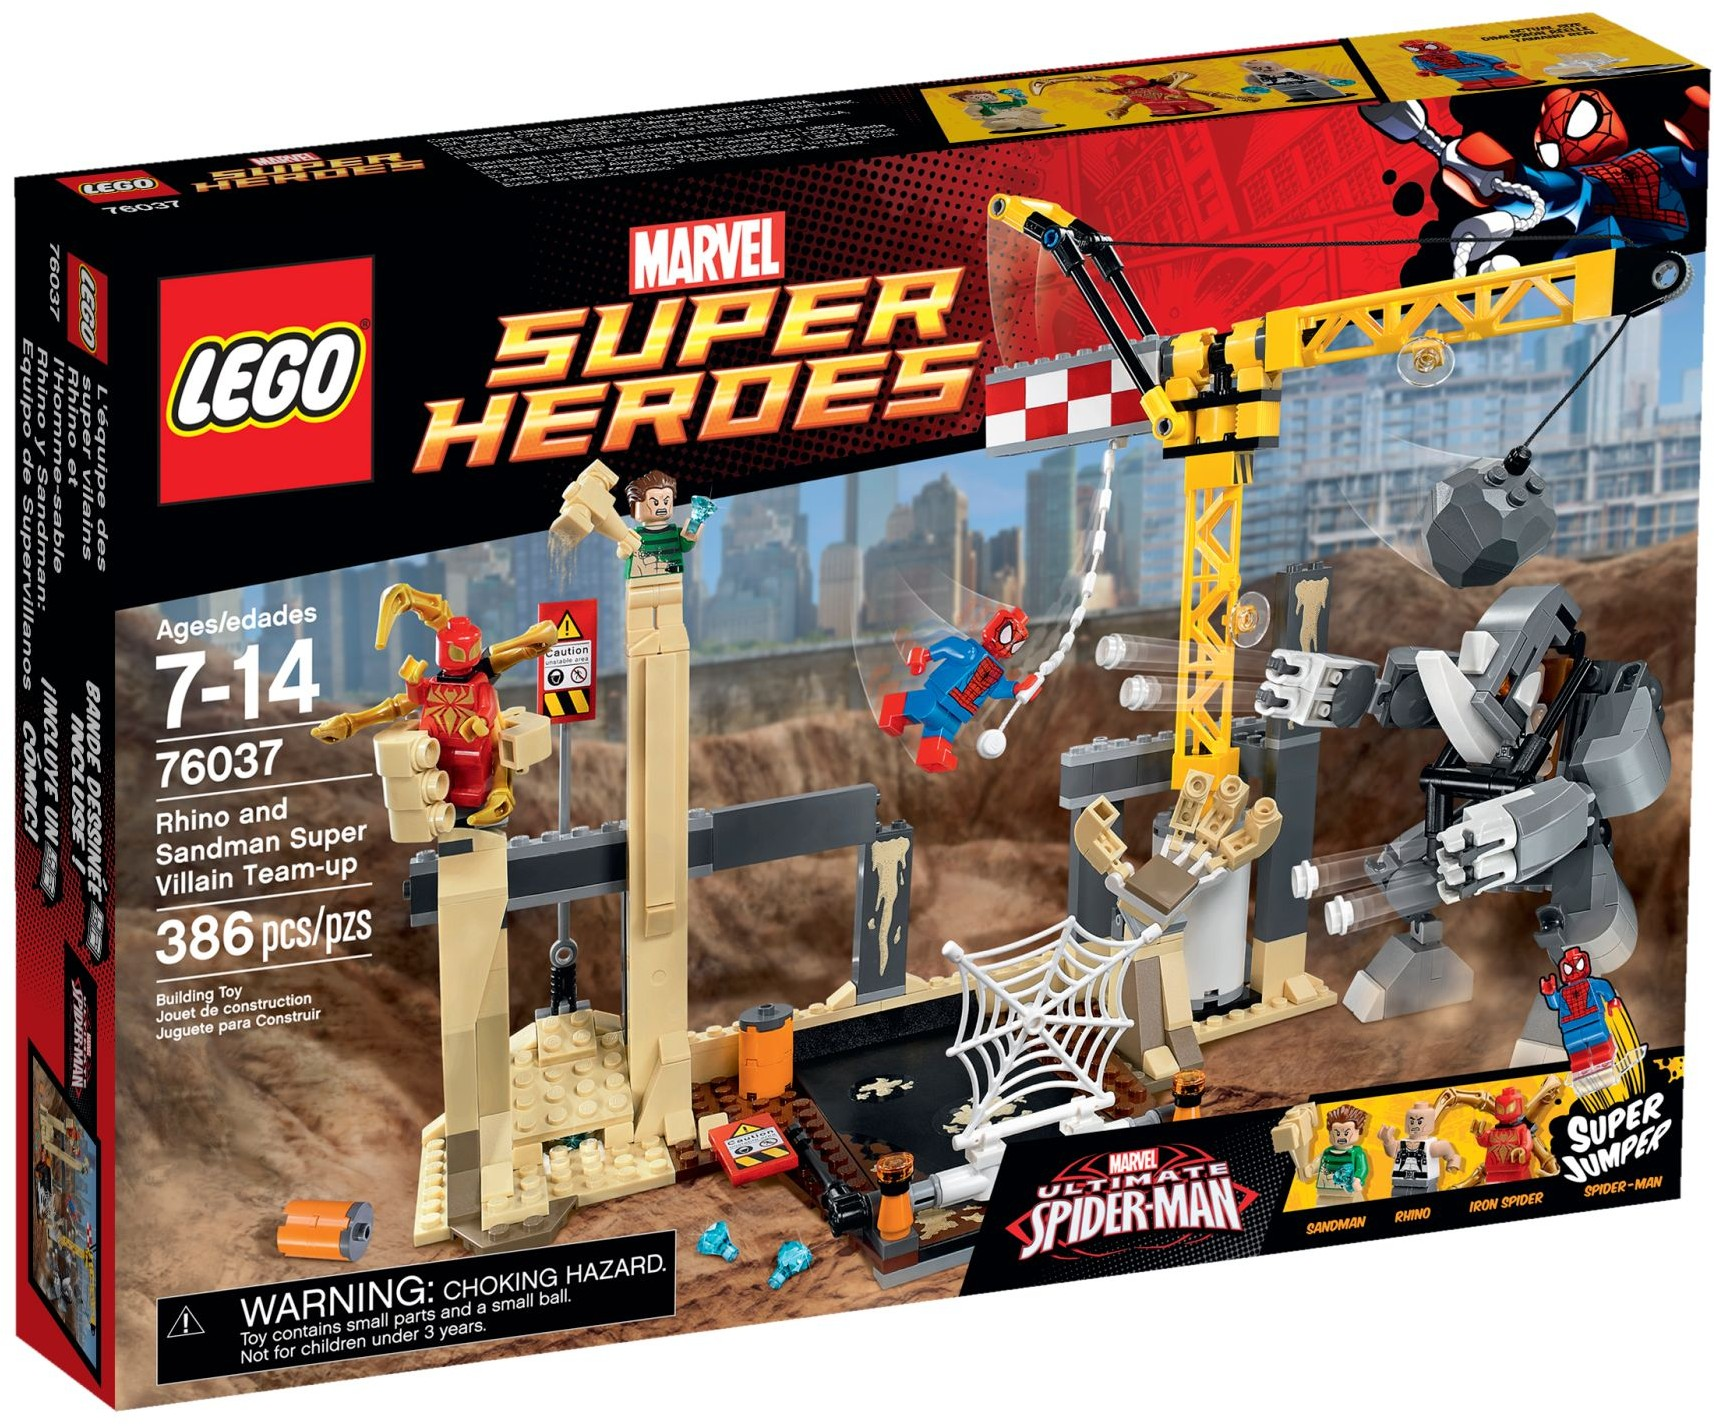 LEGO 76037 - Super Heroes - Rhino and Sandman Supervillain Team-up